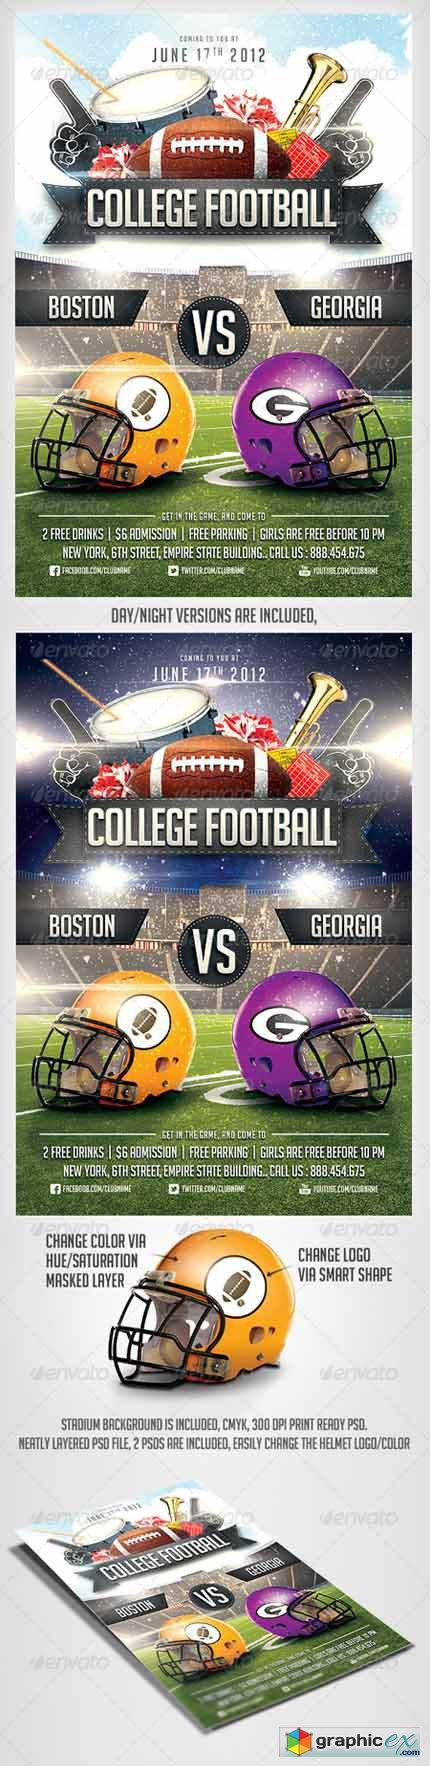 College Football Flyer Template 2921123